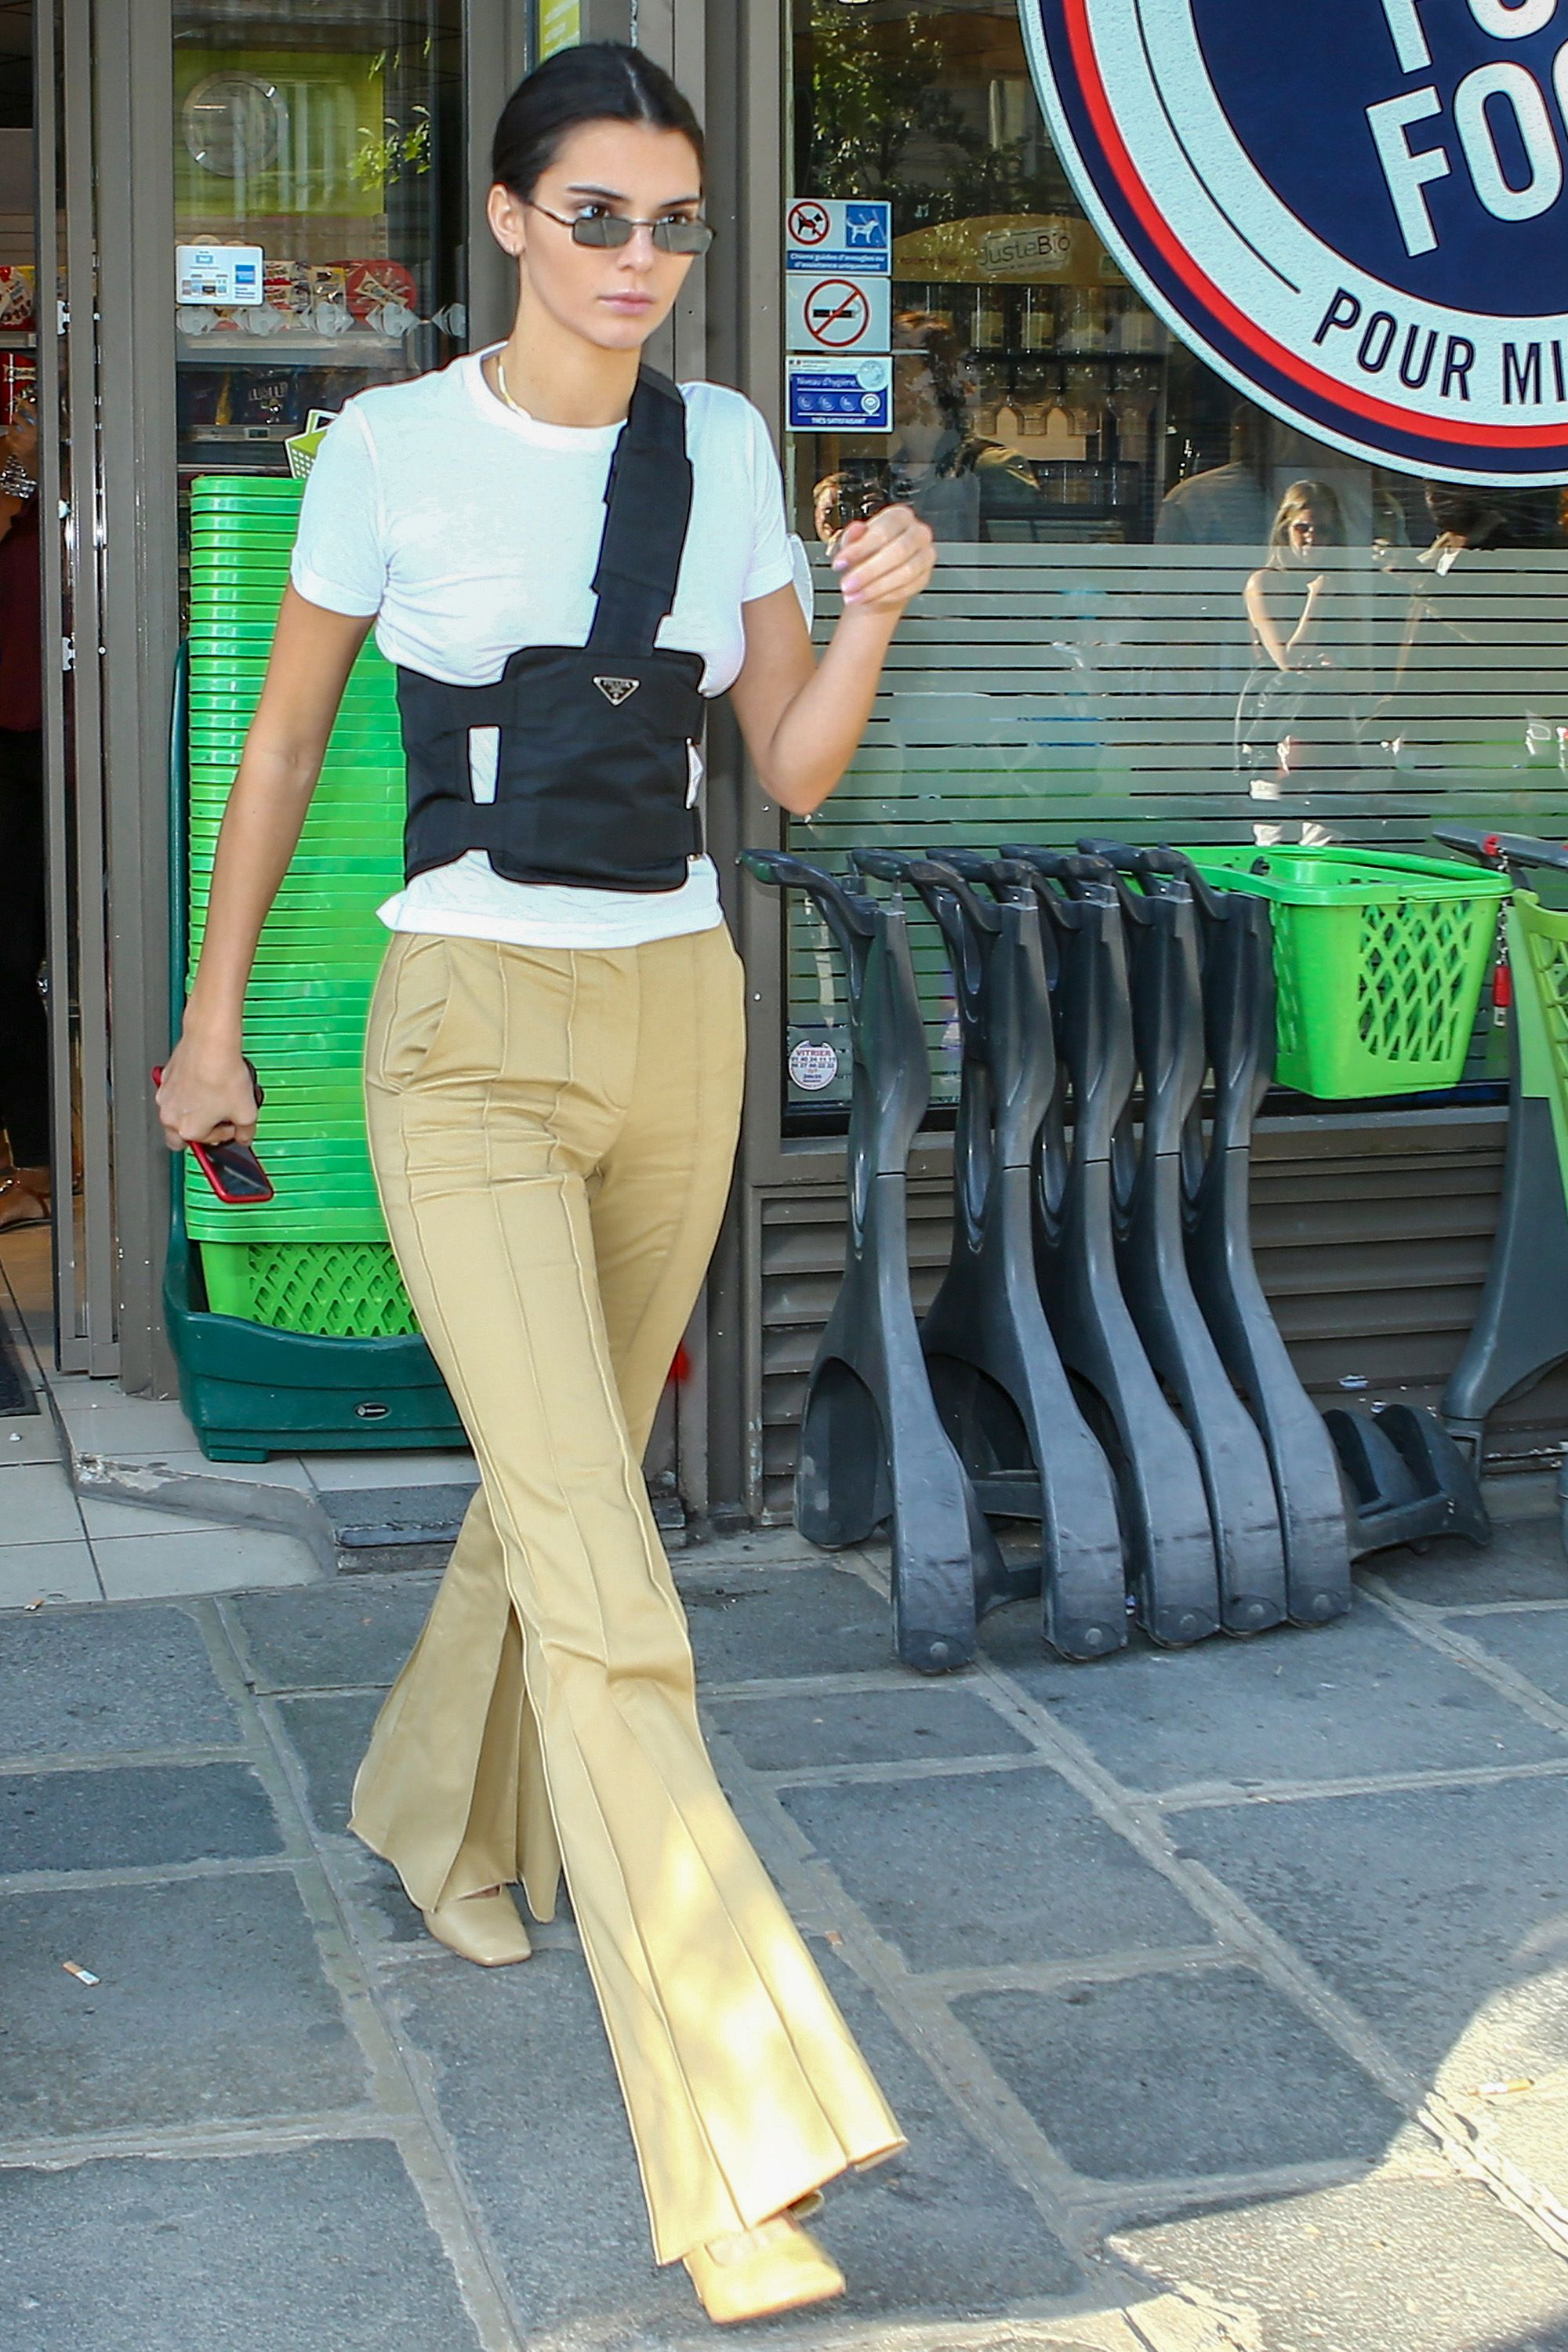 c89f5e59401b Kendall Jenner Style - Kendall Jenner s Best Outfits